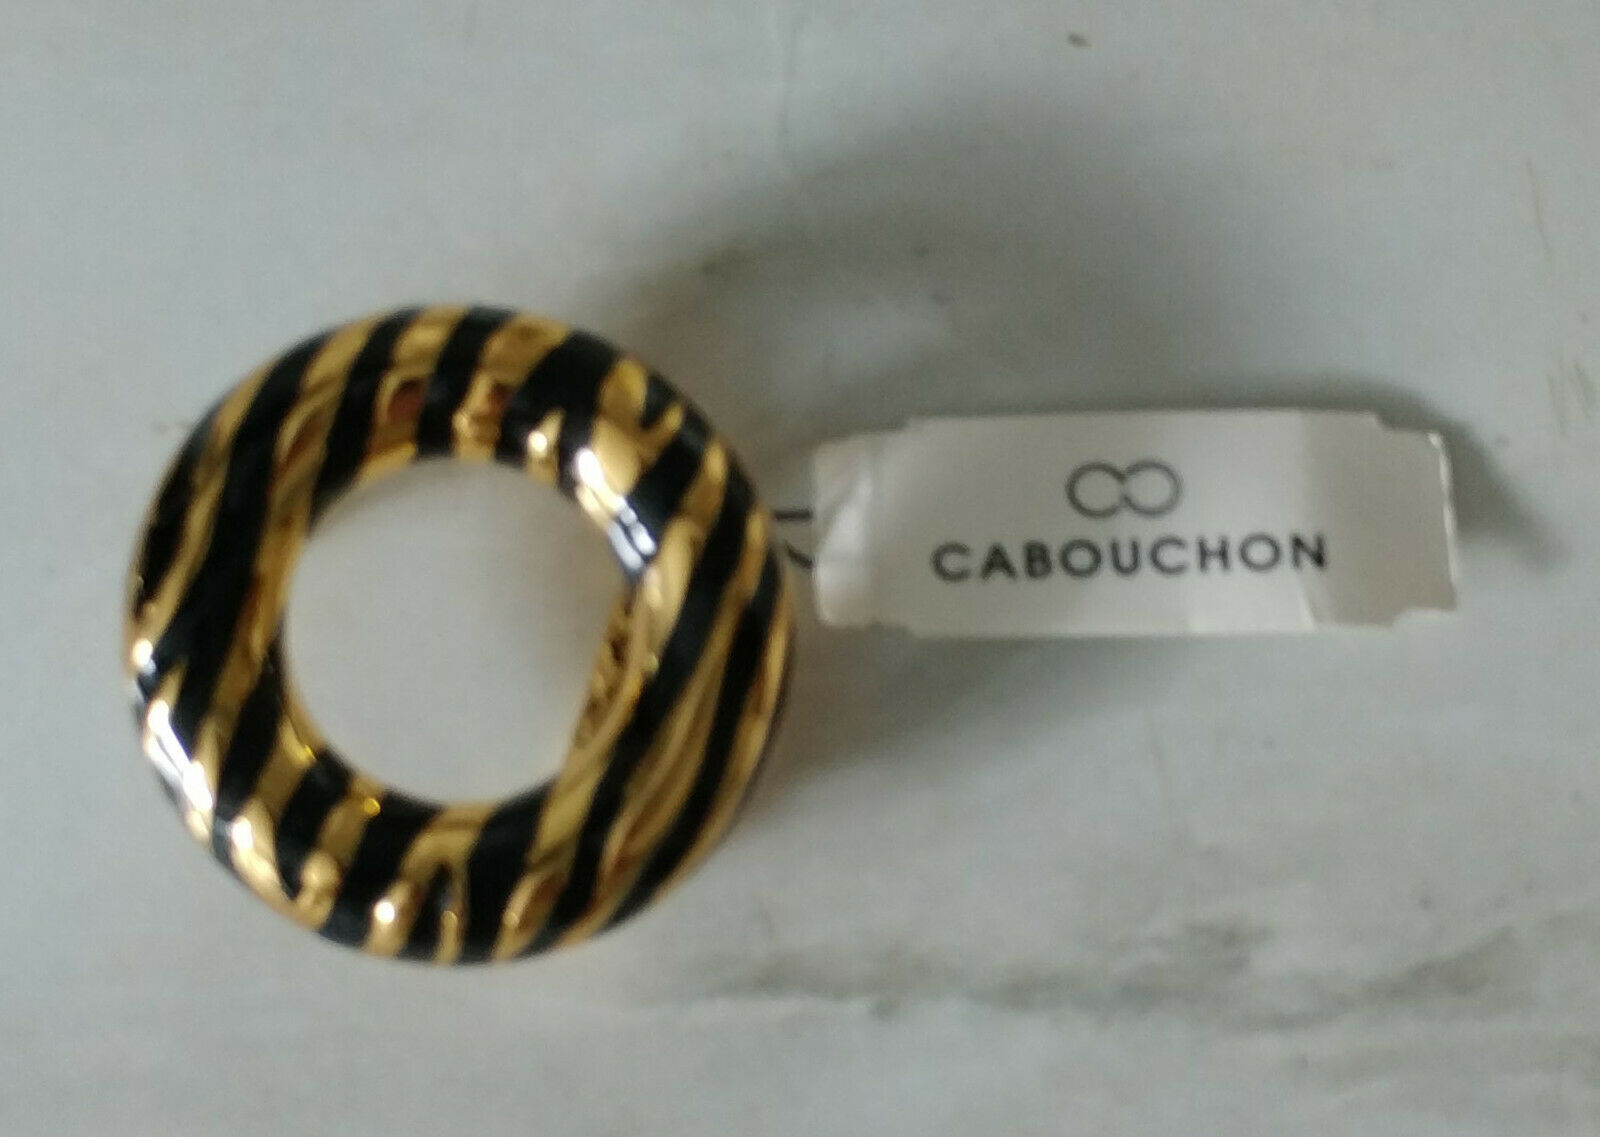 Cabouchon Ladies Belt Buckle Gold & Black Stripe New in Packet Bling Bright